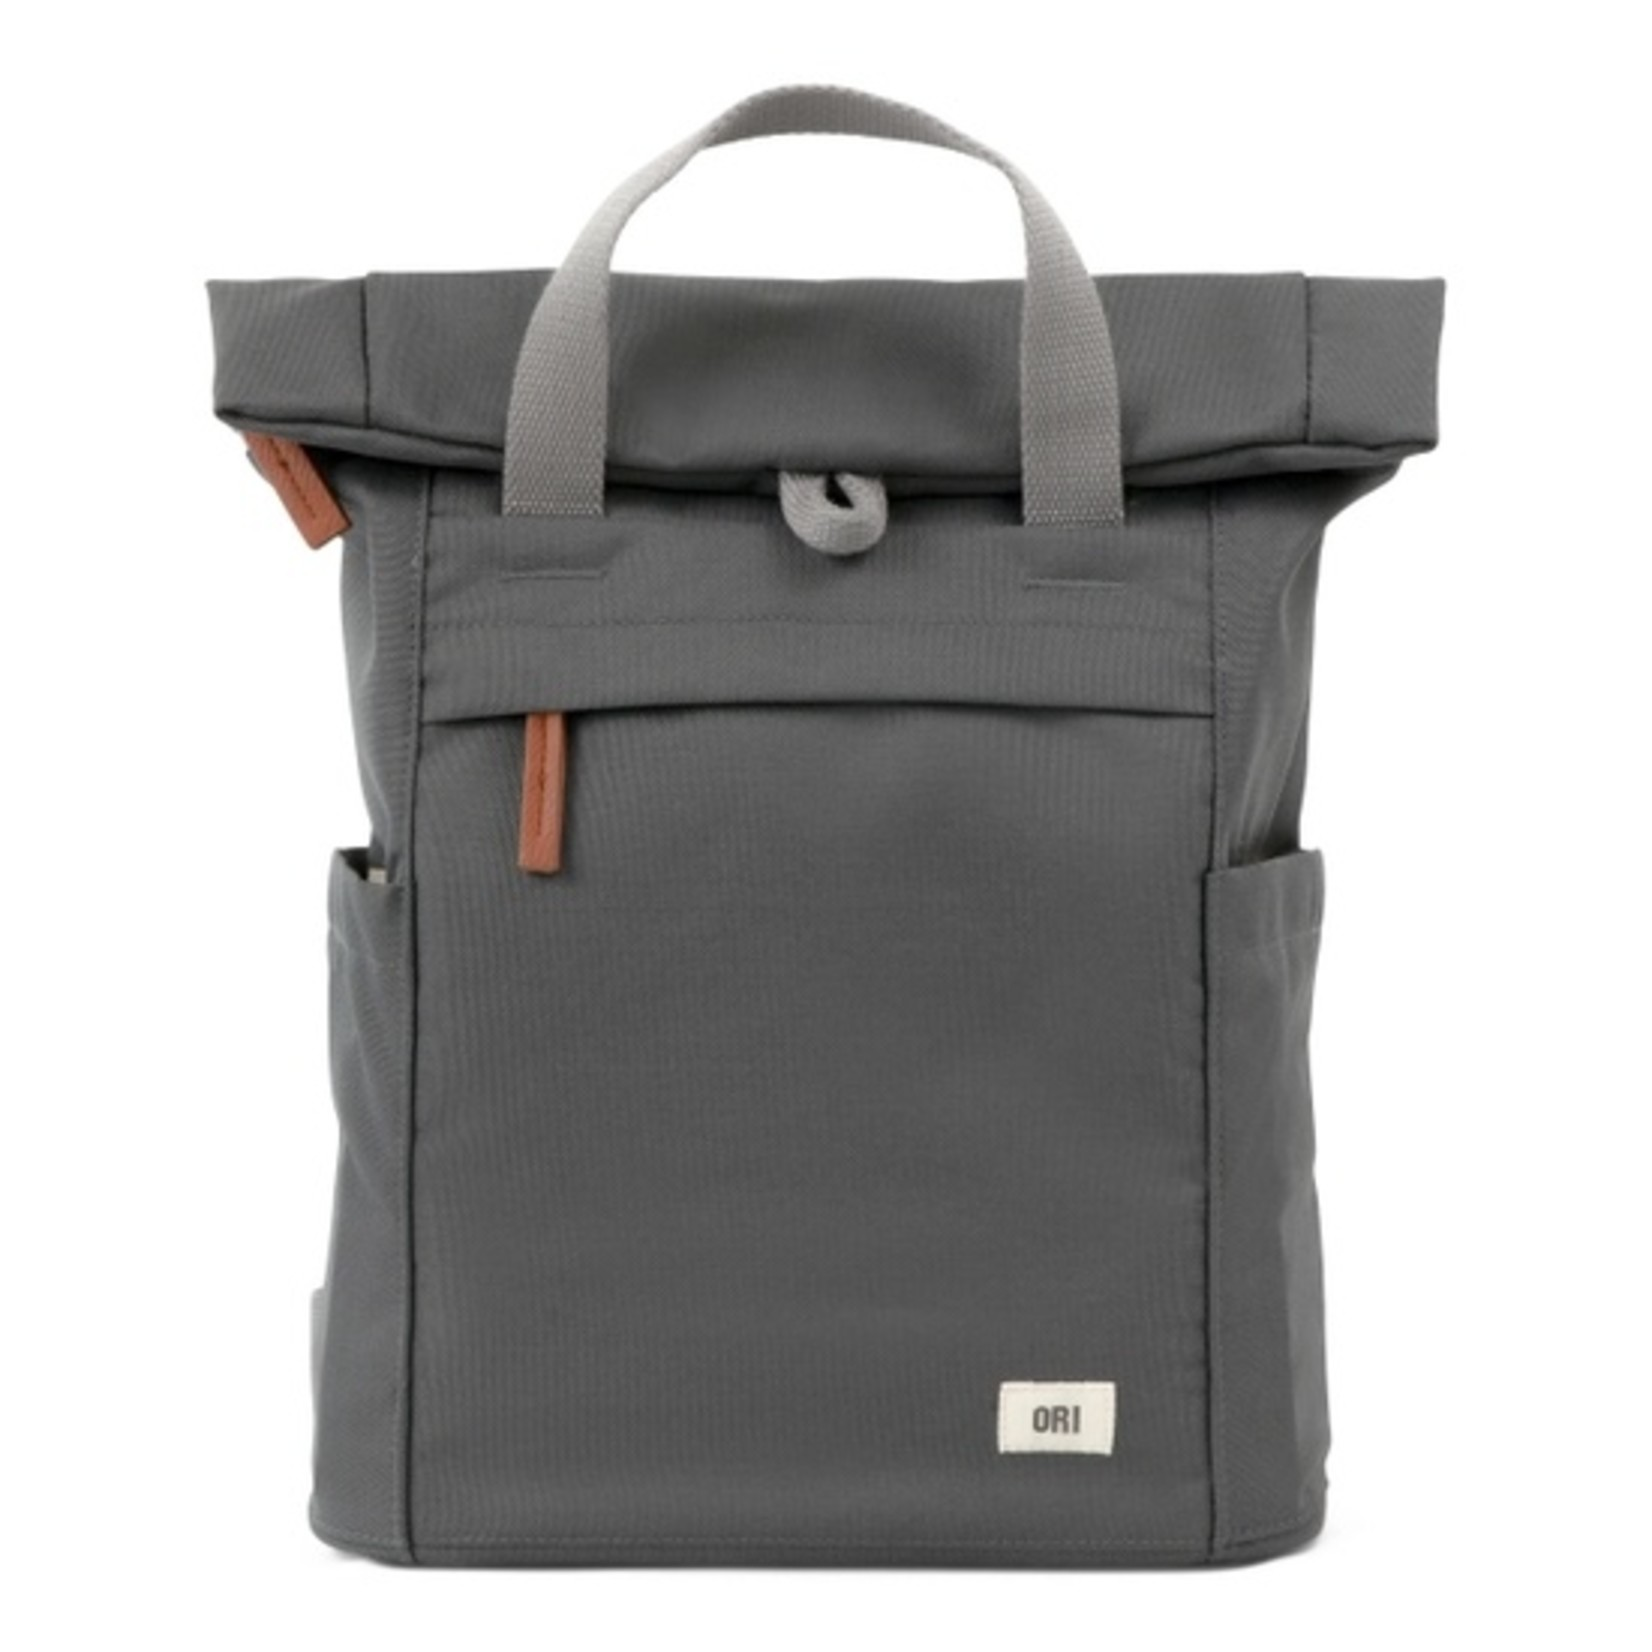 Ori London Finchley Small Sustainable Backpack Carbon